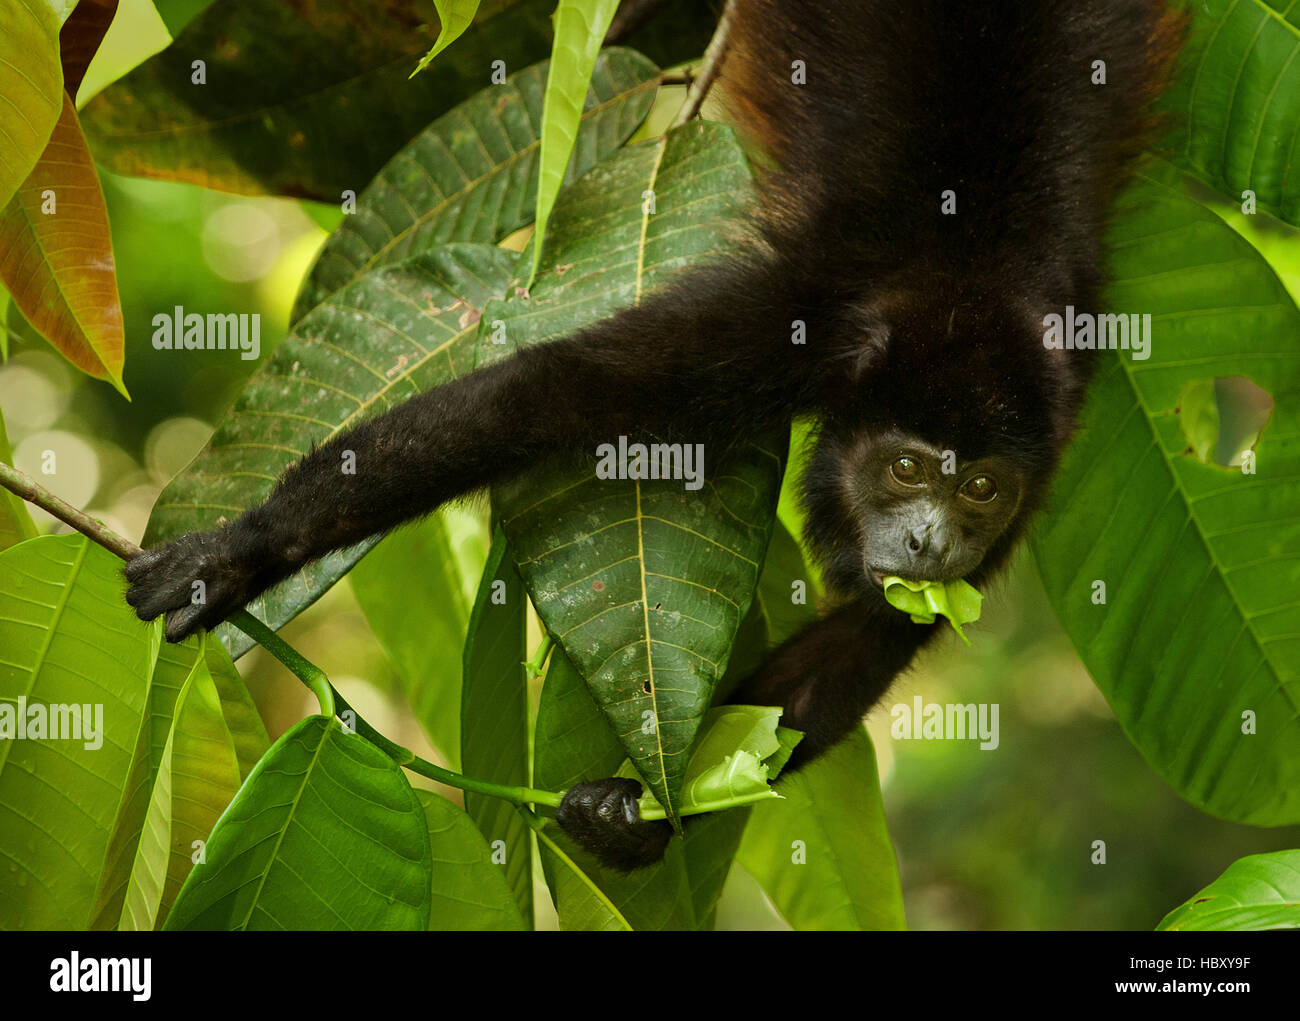 Manteau Singe hurleur (Alouatta palliata) manger une feuille, Costa Rica Photo Stock